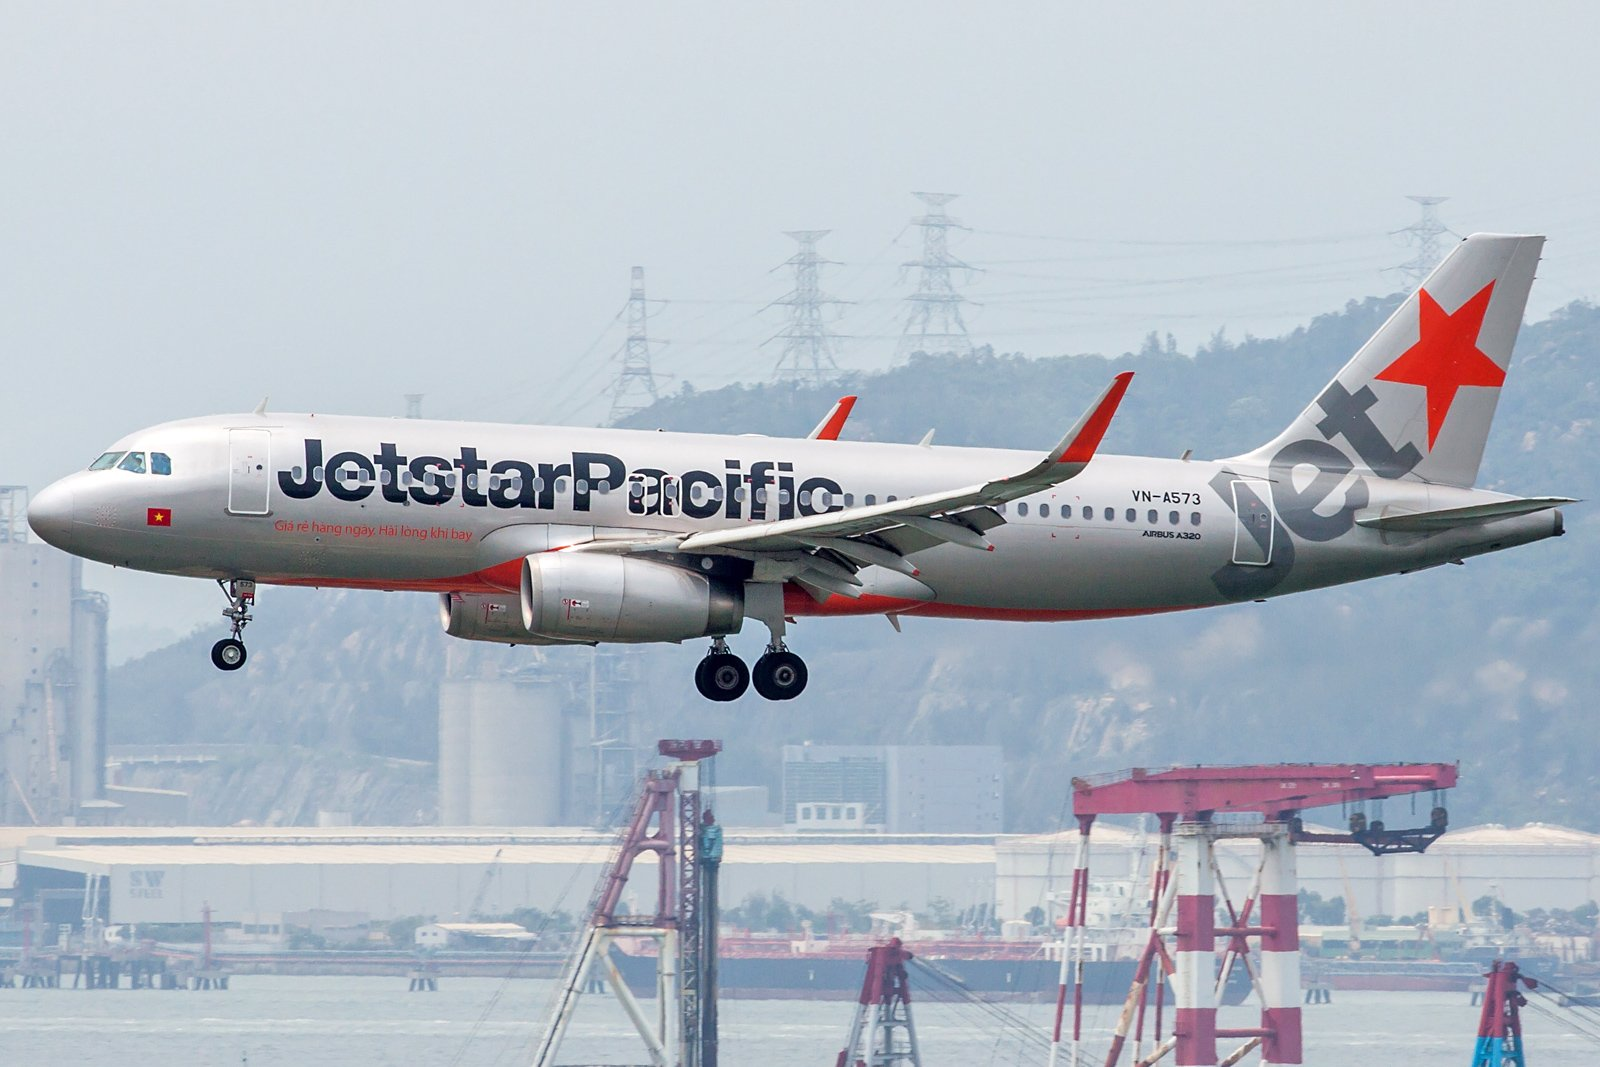 Jetstar Pacific Airlines Airbus A320-232(WL) VN-A573